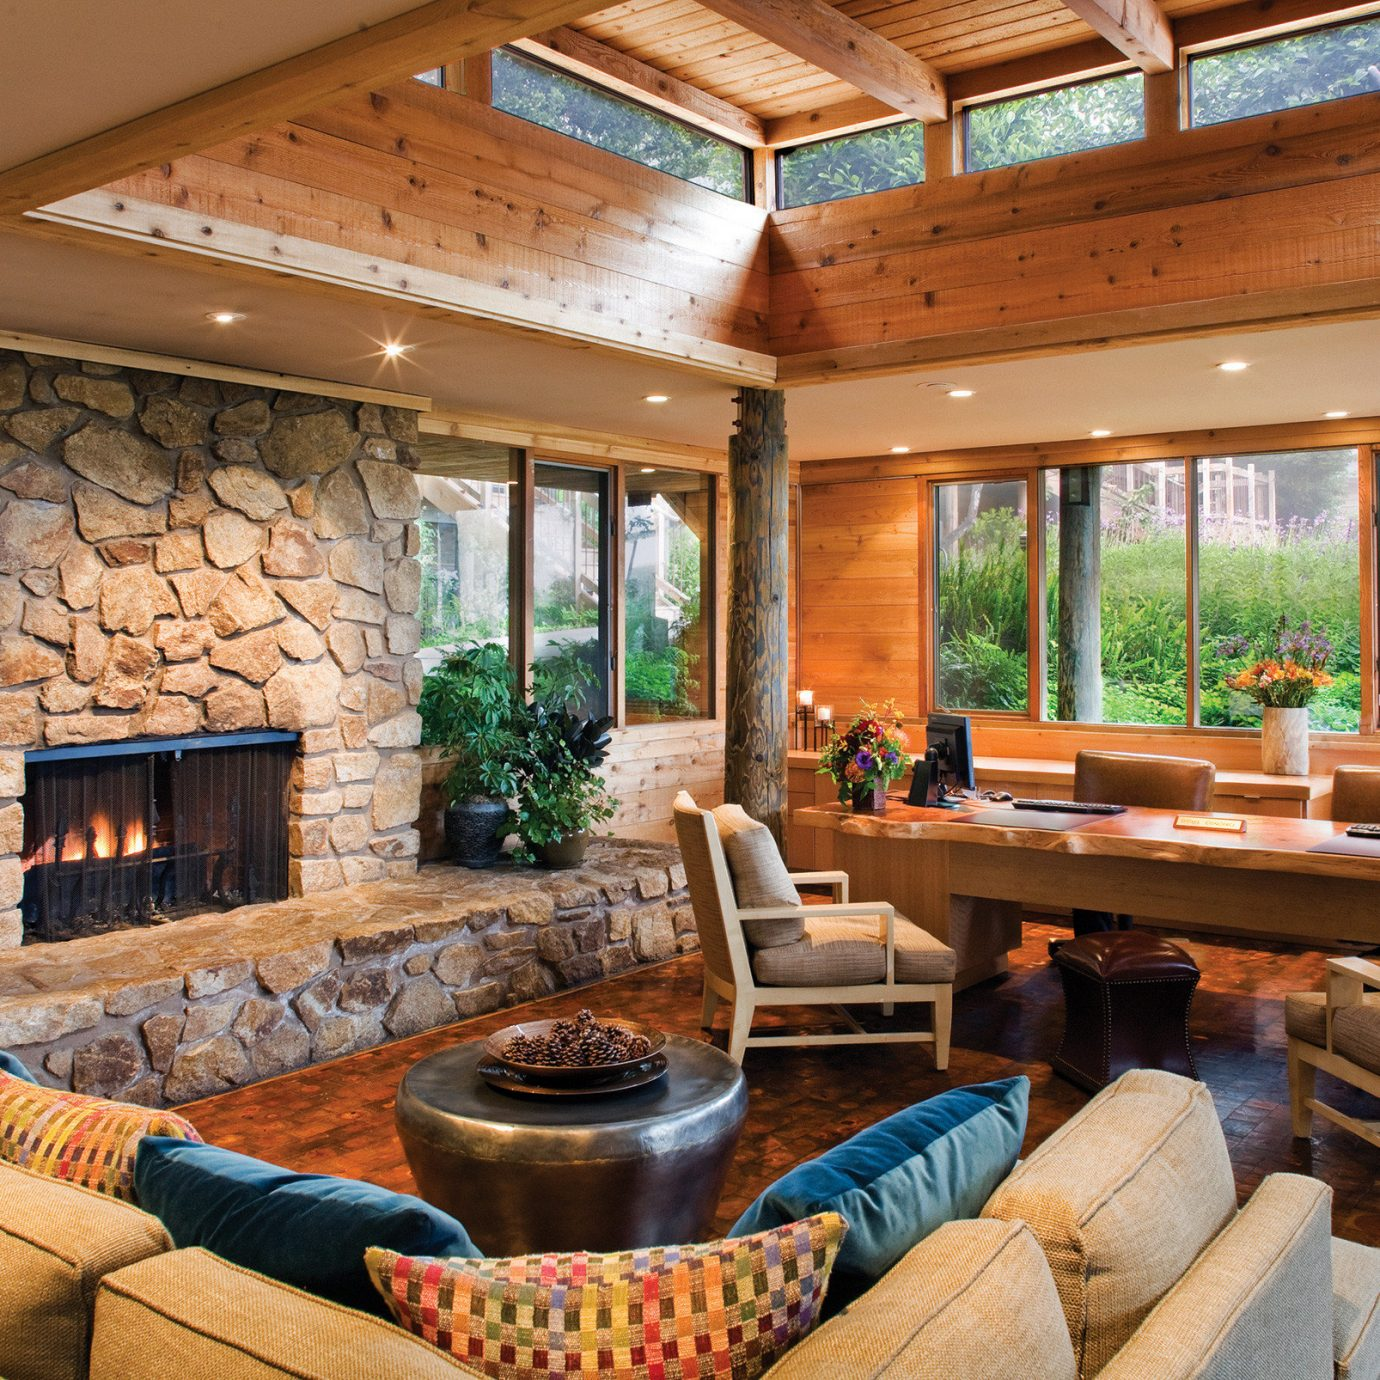 property living room log cabin home cottage Fireplace porch Villa backyard farmhouse Resort outdoor structure overlooking dining table